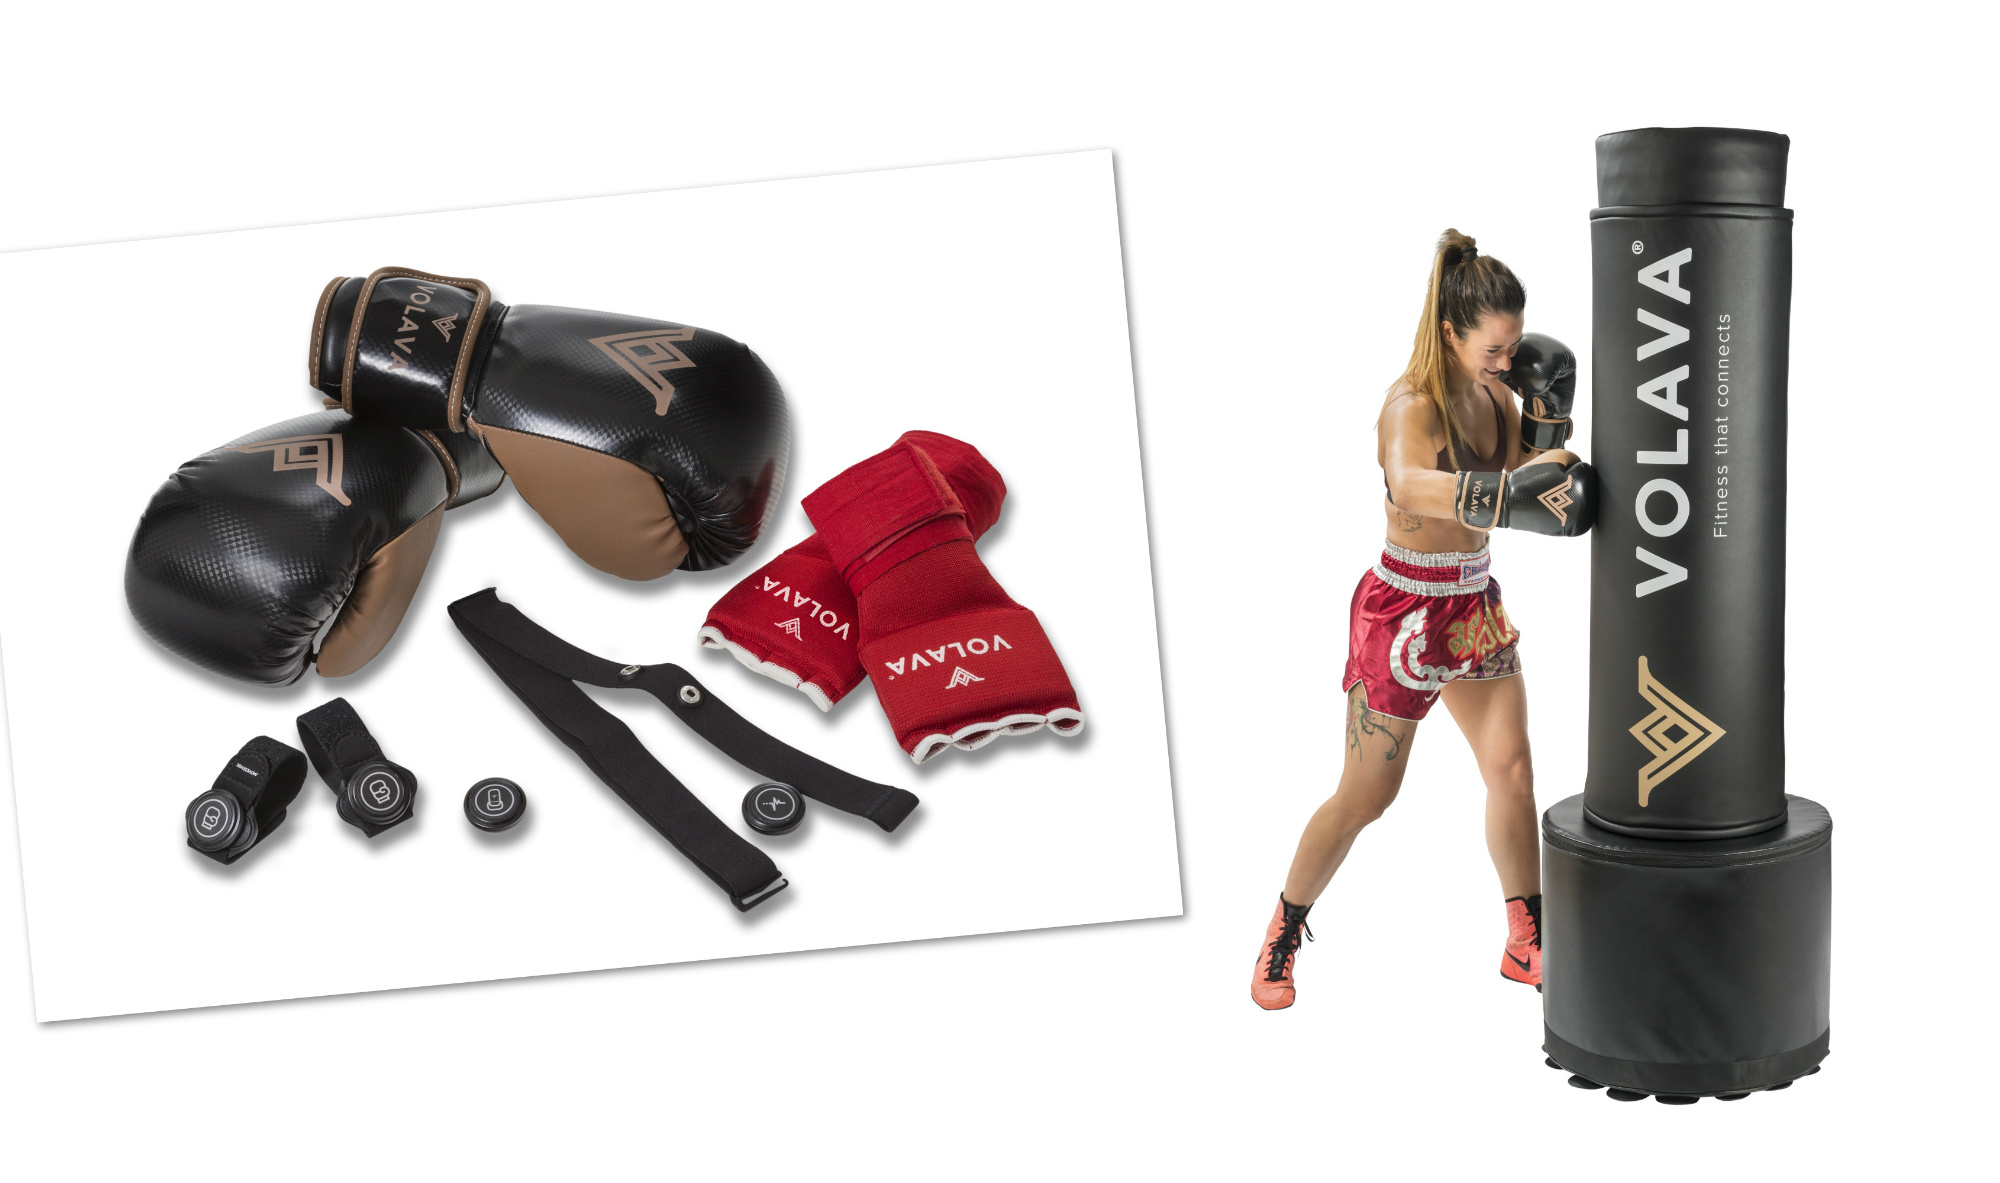 VOLAVA FitBoxing Kit Brings Studio Style Fitness Boxing to Home – Movesense